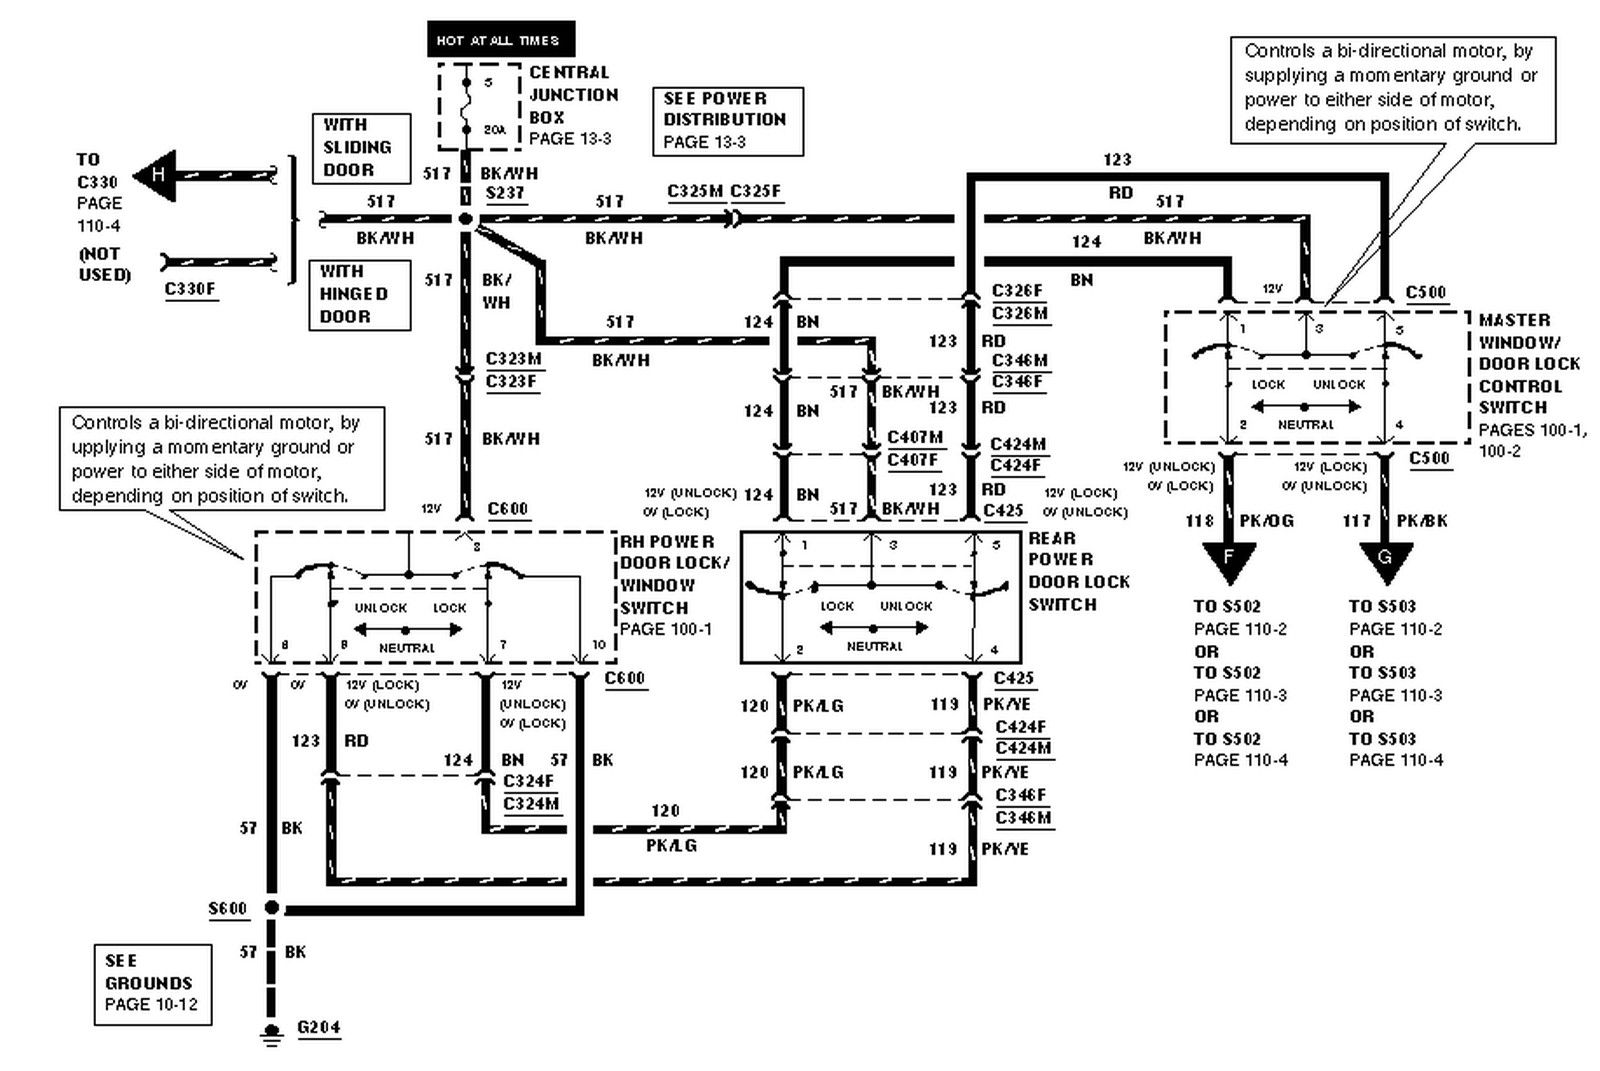 2000 f250 door lock wiring diagram - wiring diagrams page  systema-naturae.it